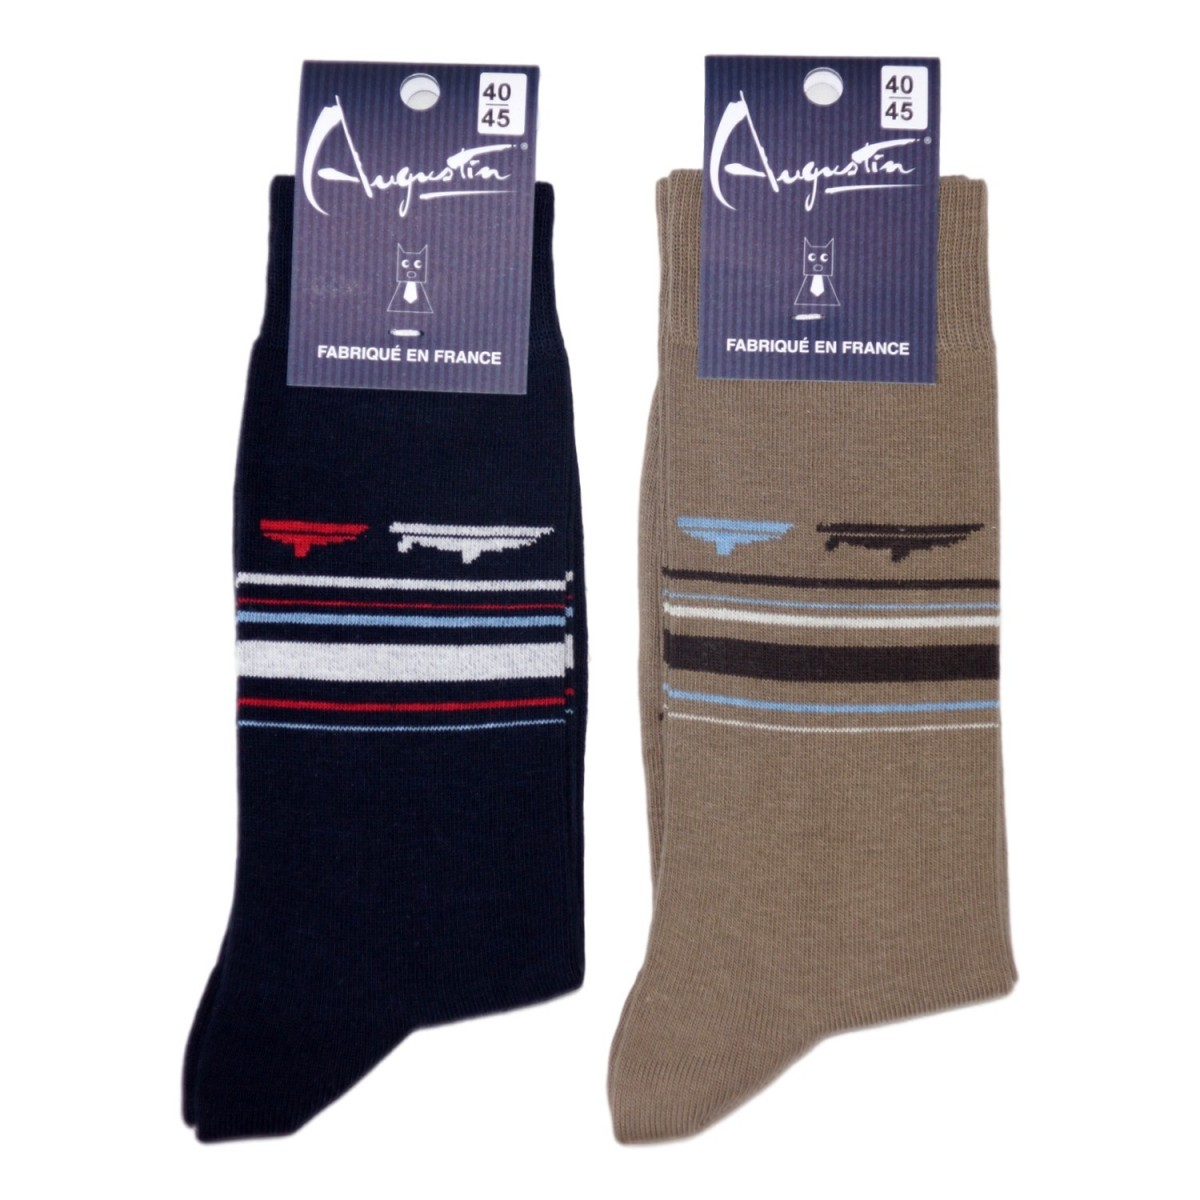 https://www.boutique-augustin.com/1162-thickbox/socks-boat-hull.jpg